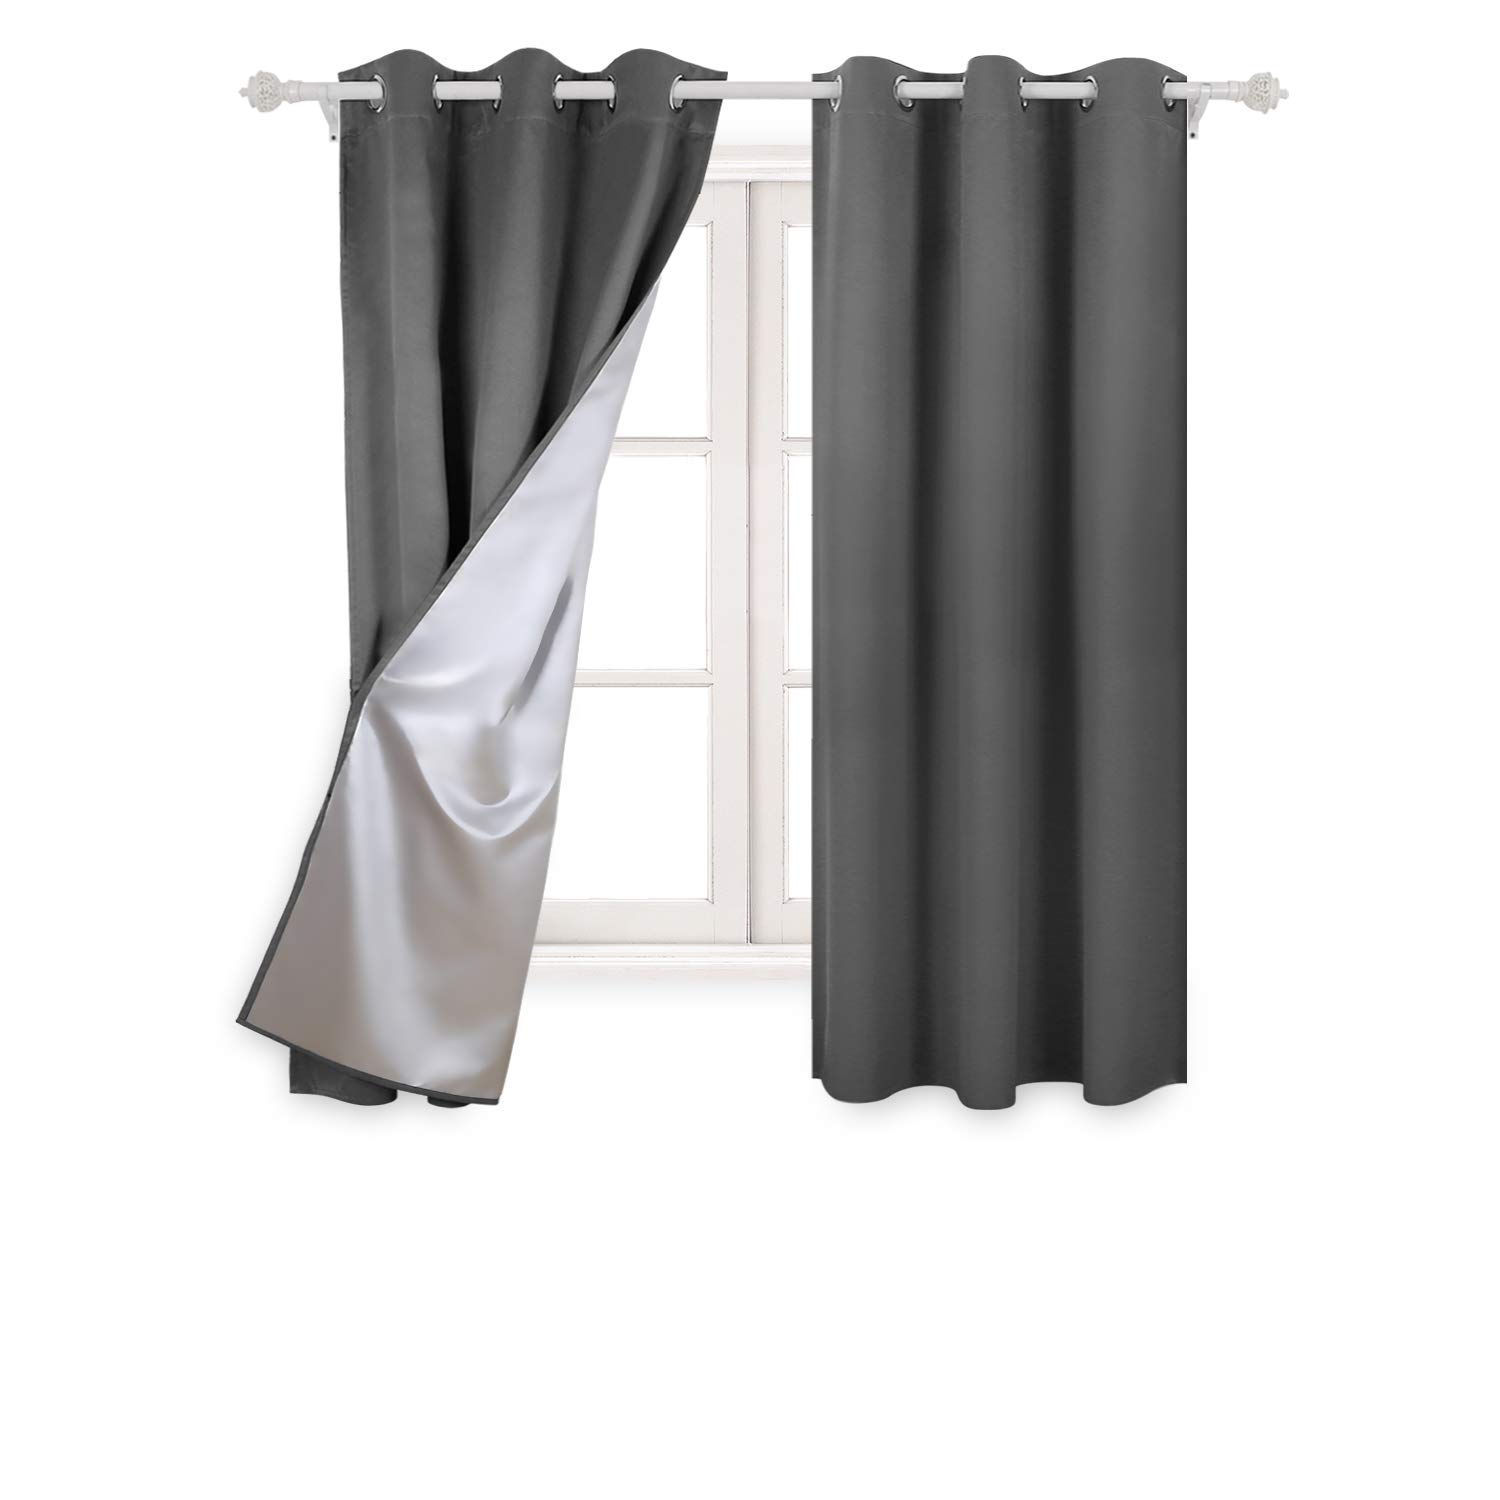 Deconovo Curtains with Silver Coating Beige Blackout Curtains Short Window Curtains for Small Windows 38W by 45L Inch Beige 2 Panels